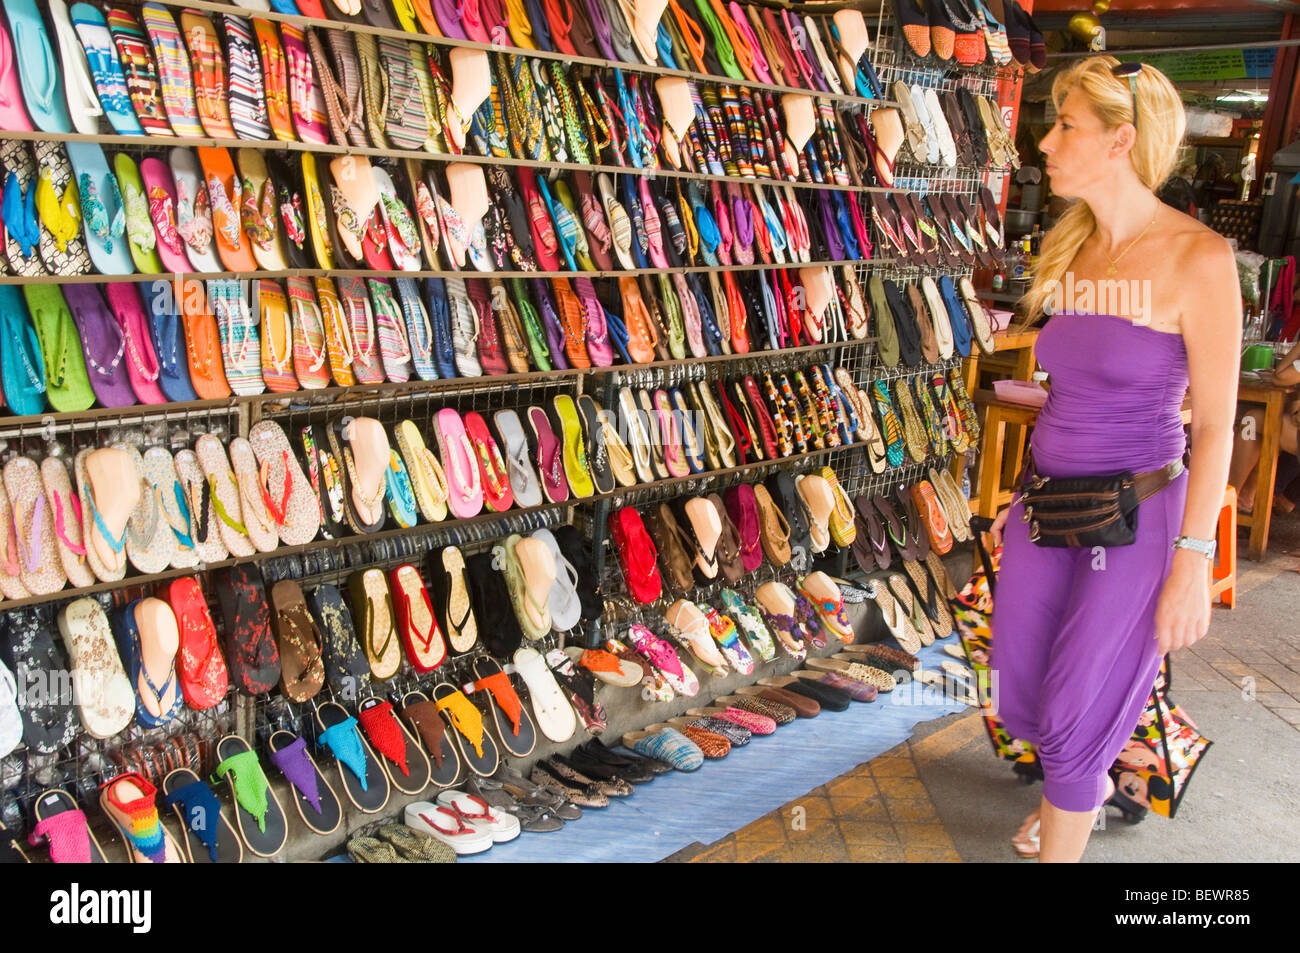 tourist shopping for shoes at the Chatuchak Weekend Market in Bangkok Thailand - Stock Image